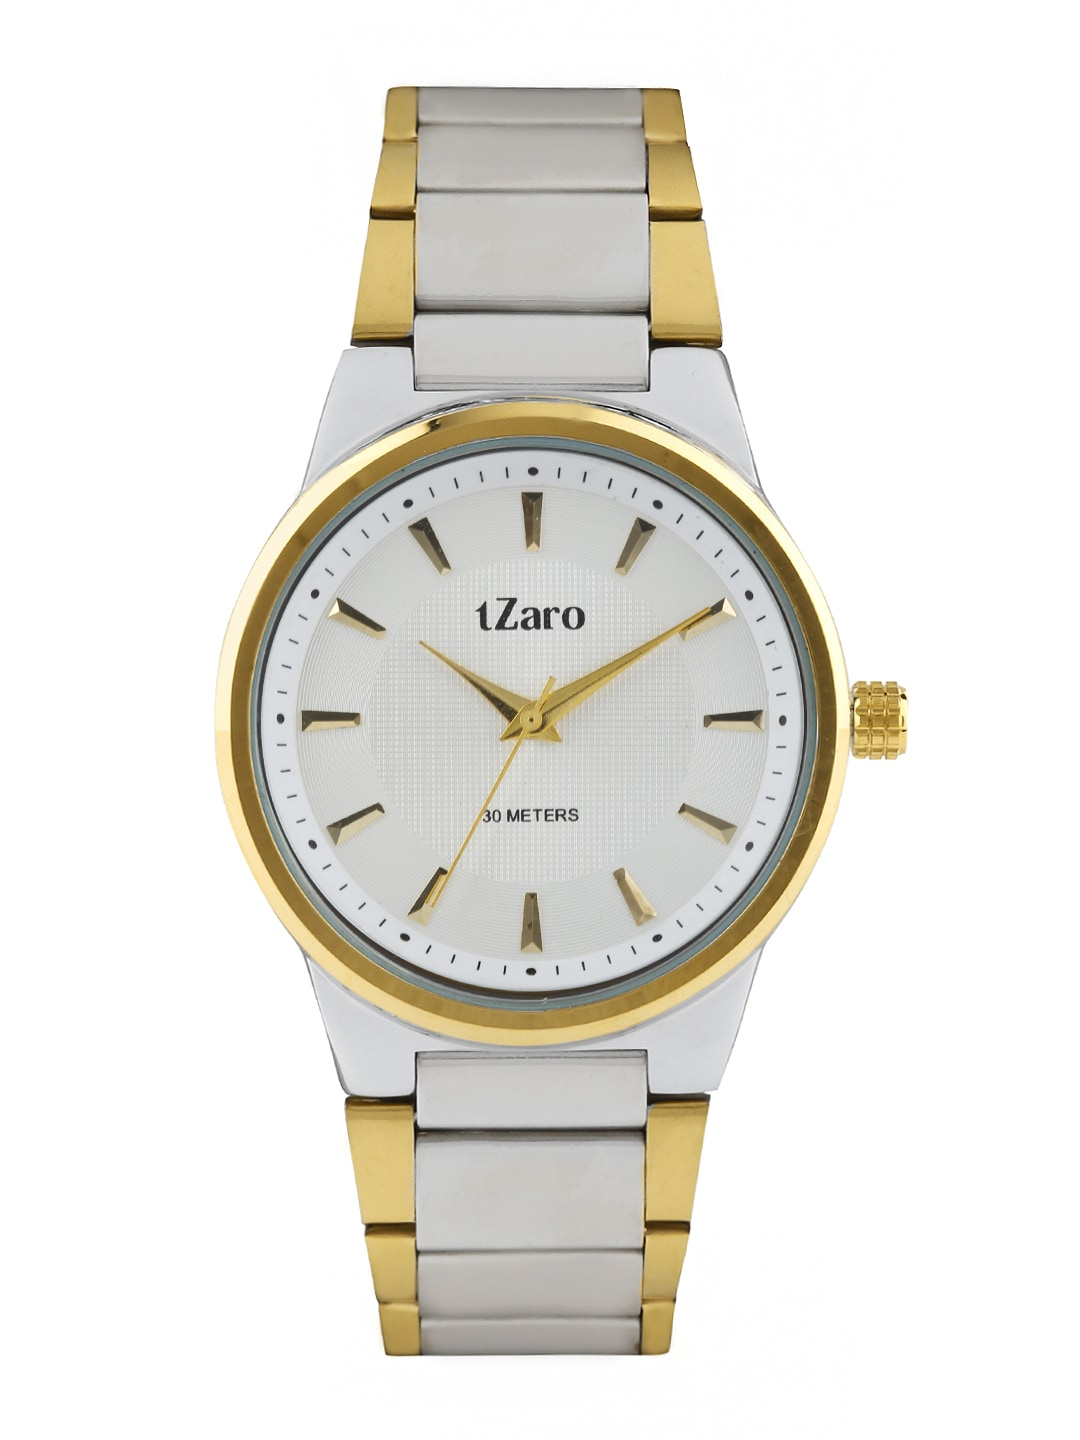 tZaro tZIH23TTWHT Men's Watch image.